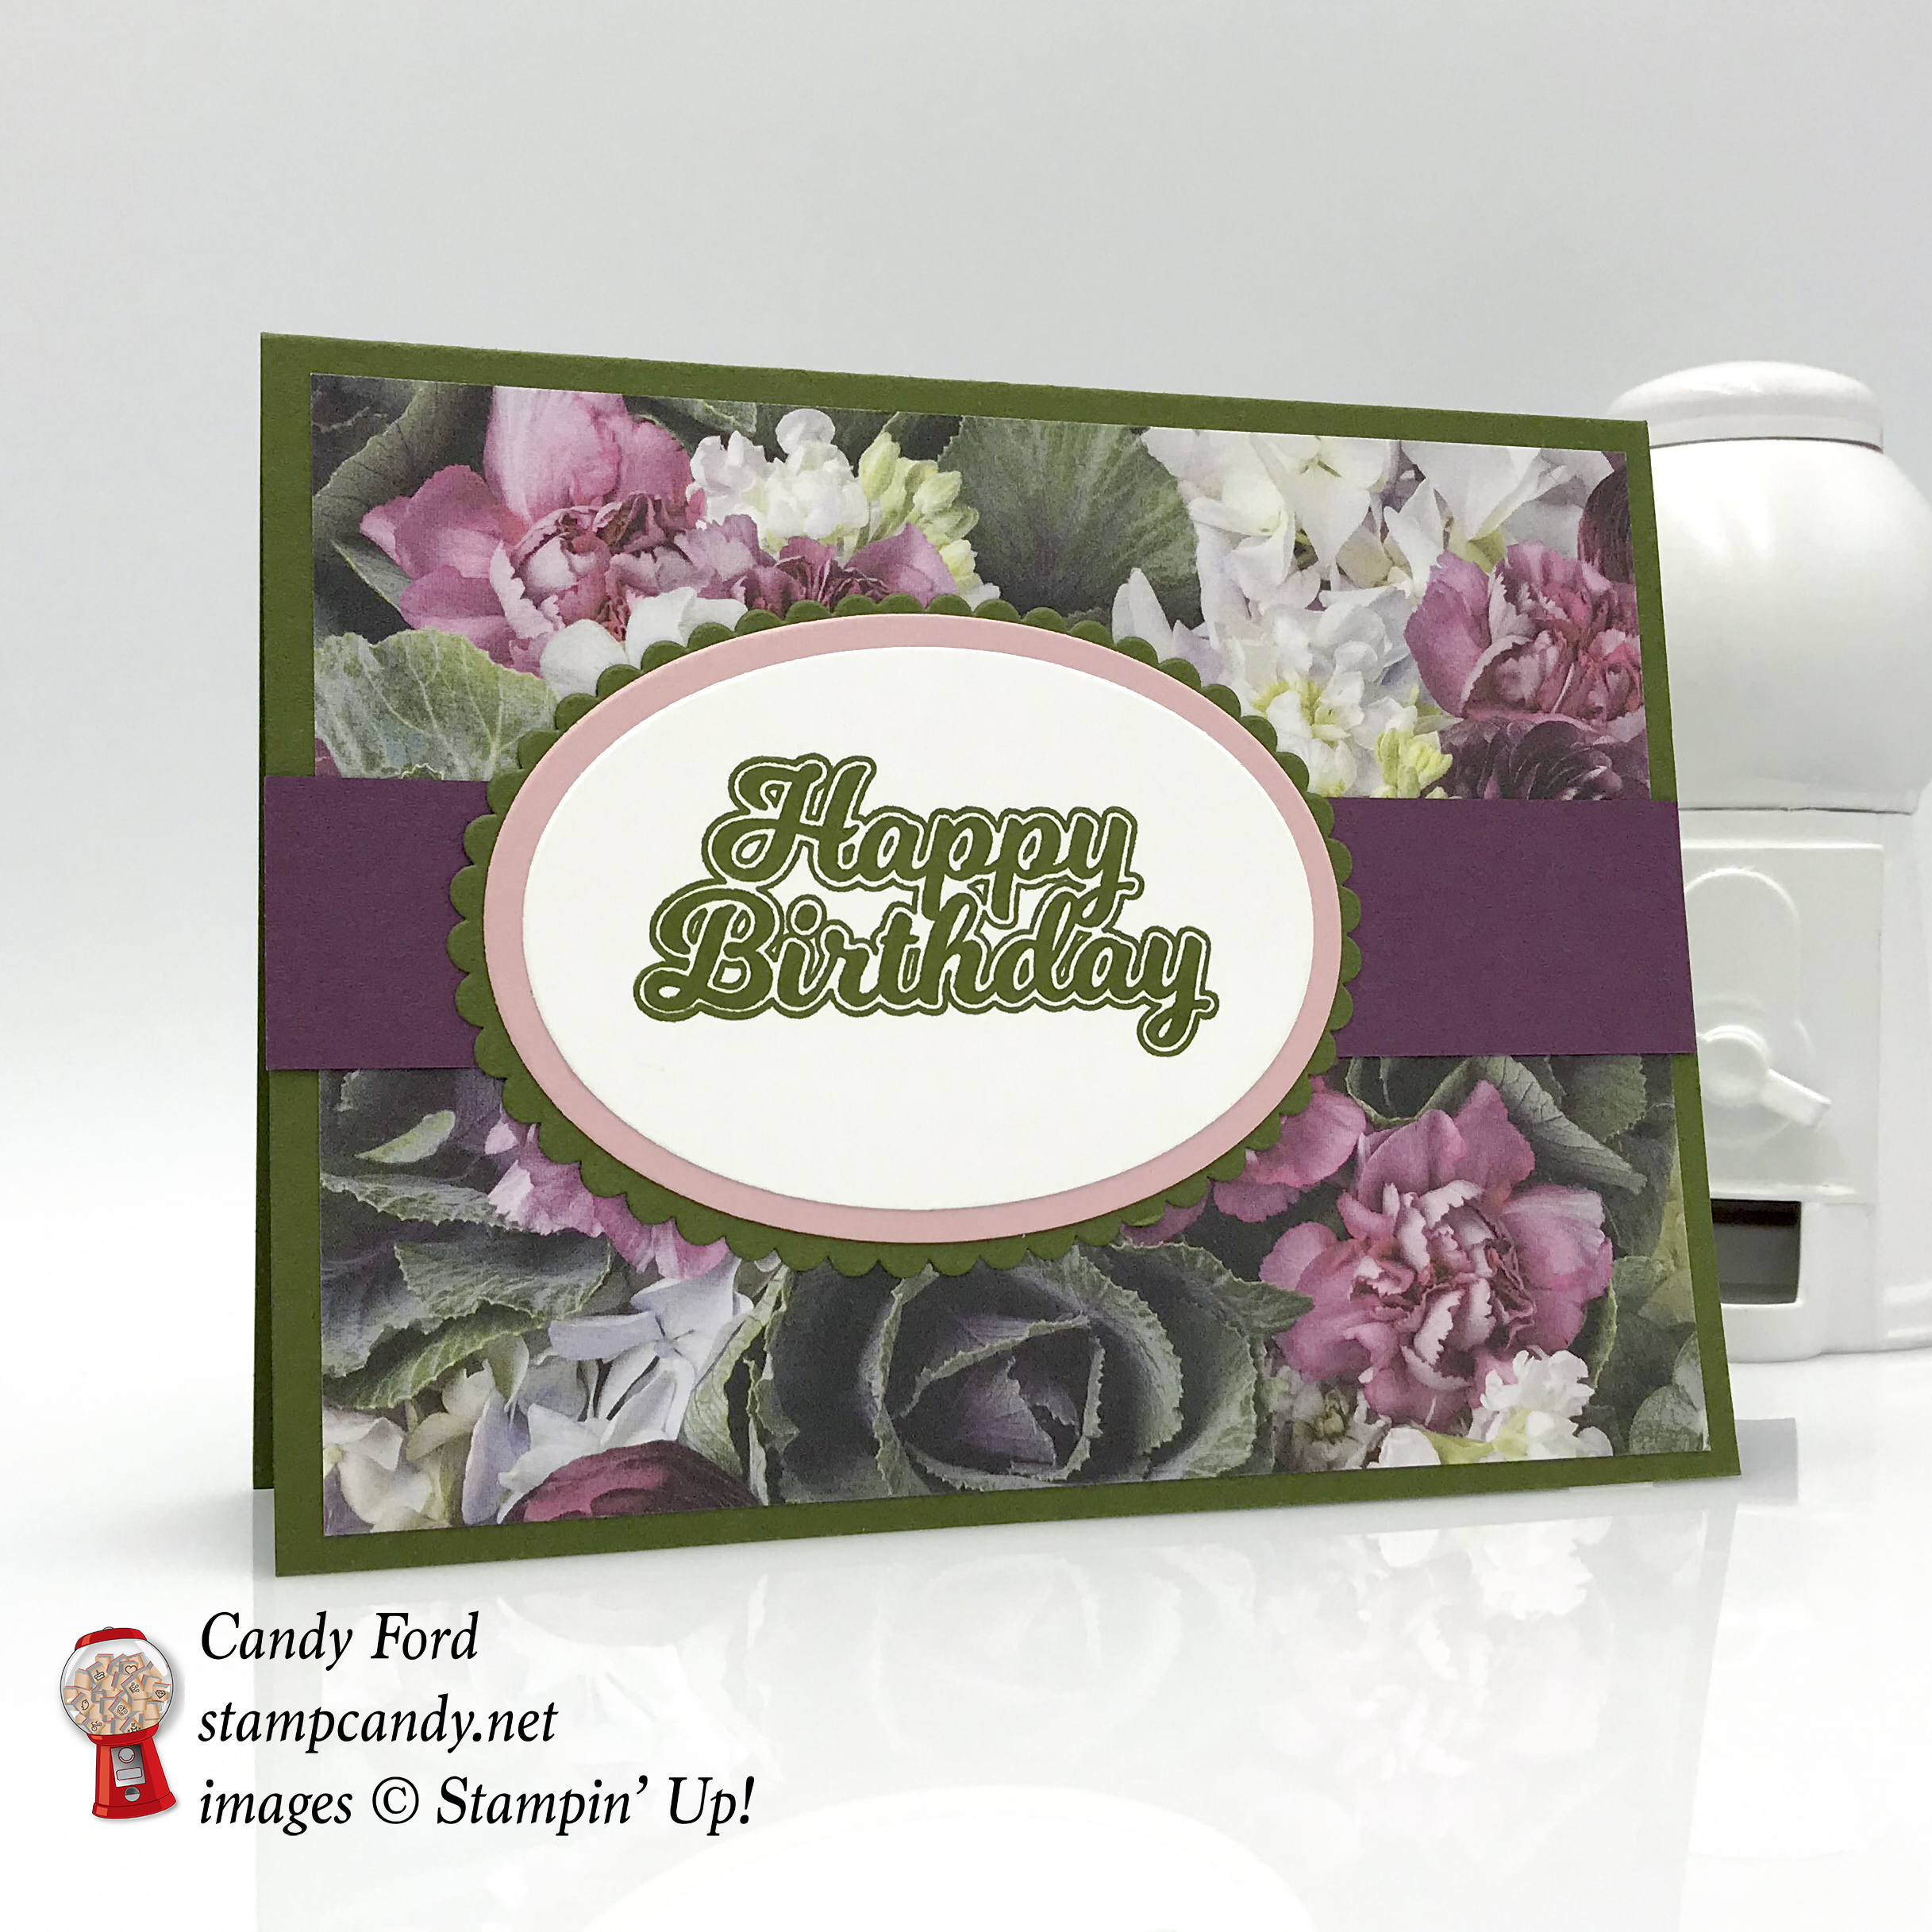 Birthday Card made using the Blow Out the Candles stamp set, Petal Promenade Designer Series Paper (DSP), and Layering Ovals Framelits Dies by Stampin' Up! #stampcandy